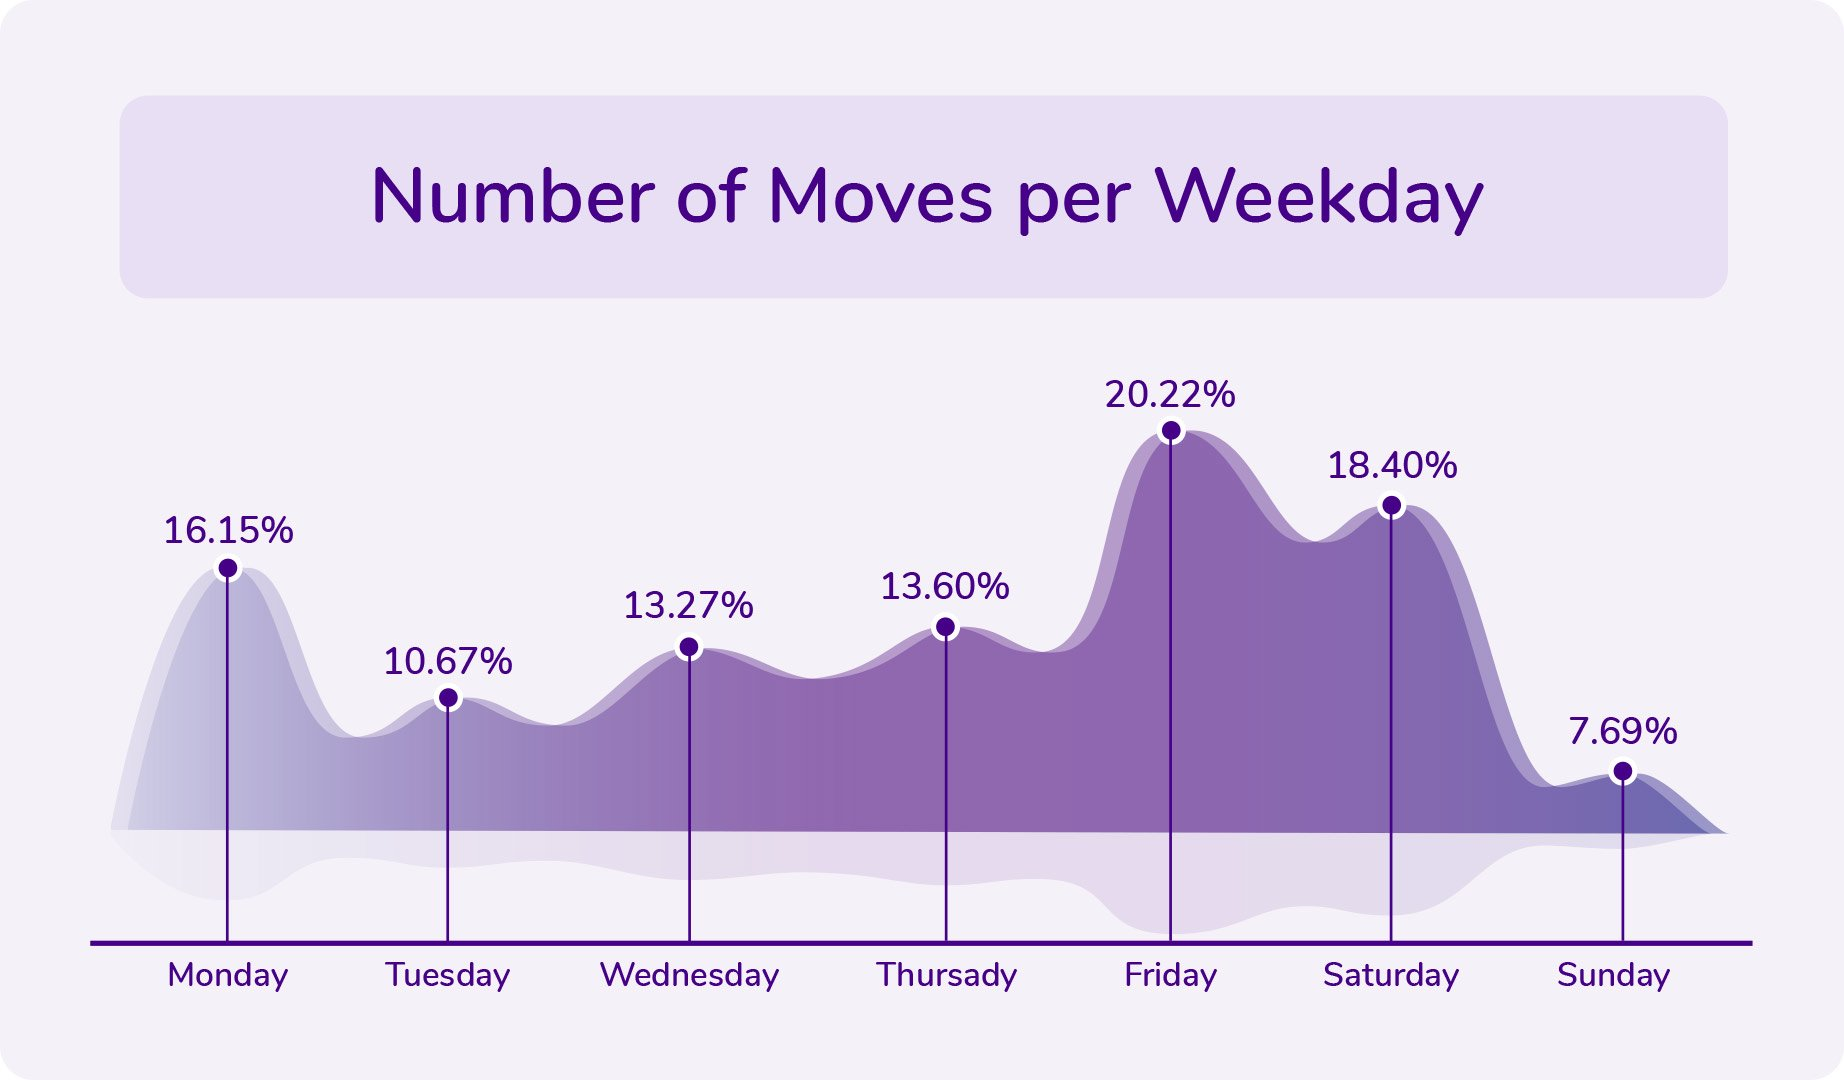 Number of Moves per Weekday